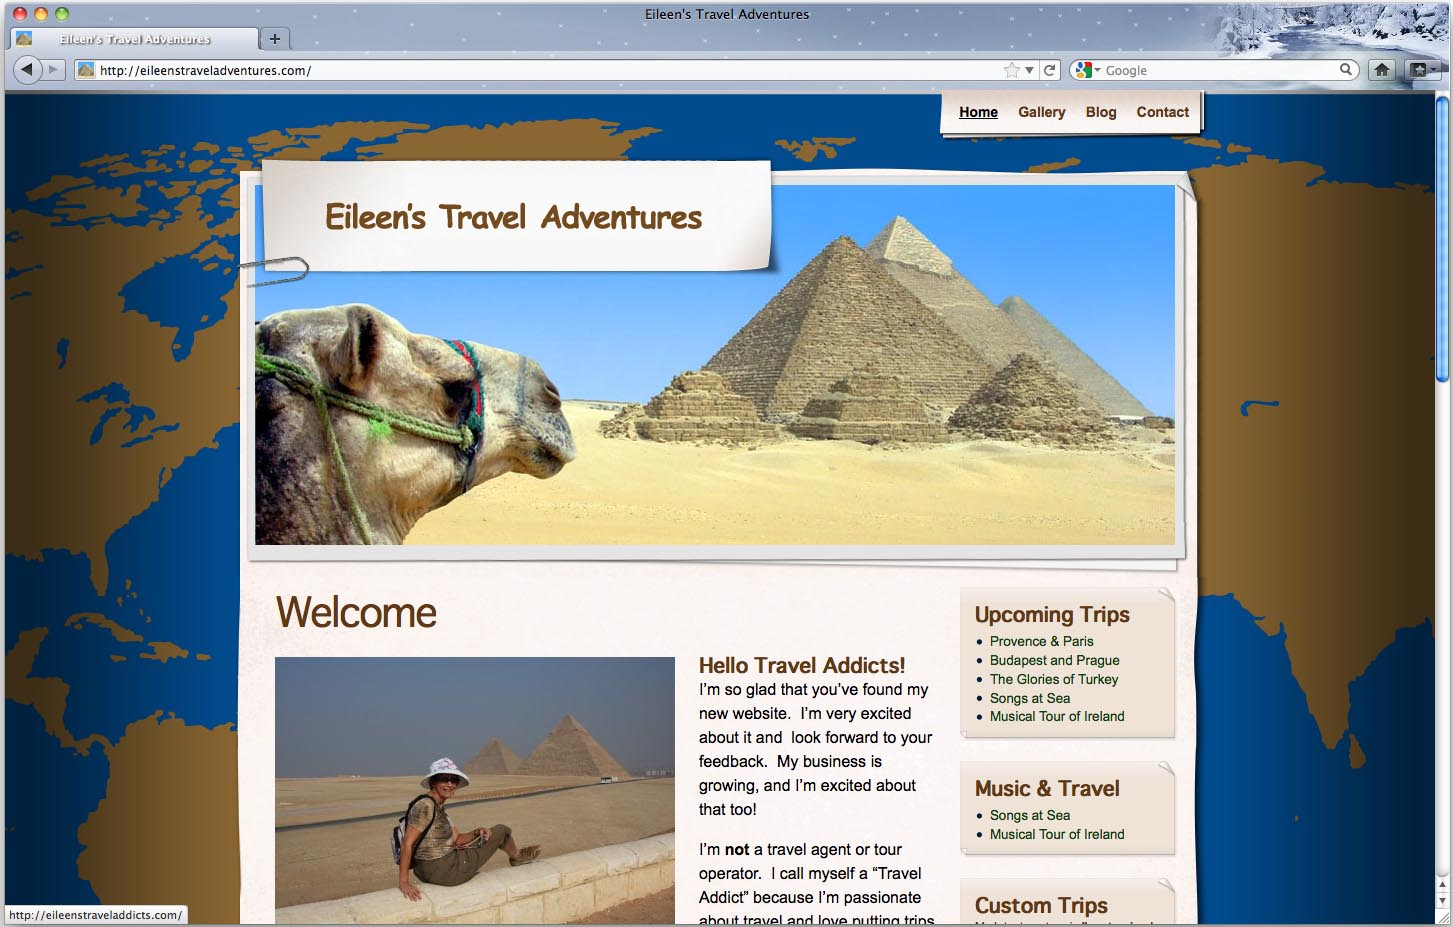 Eileen's Travel Adventures customized travel groups